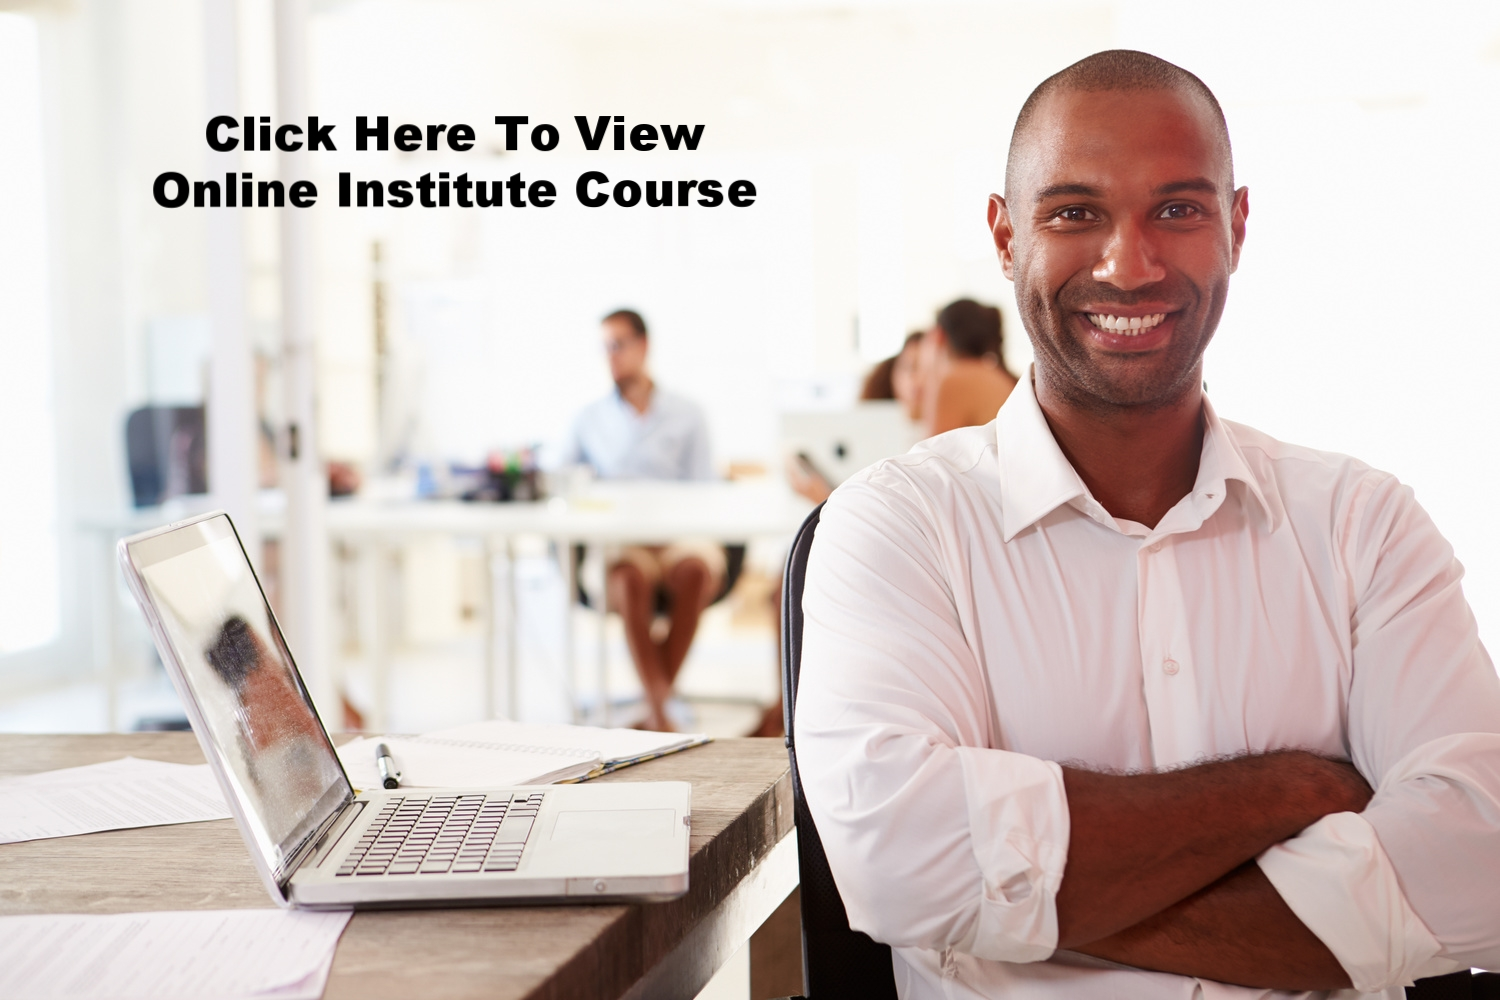 New Leadership Development Institute Online